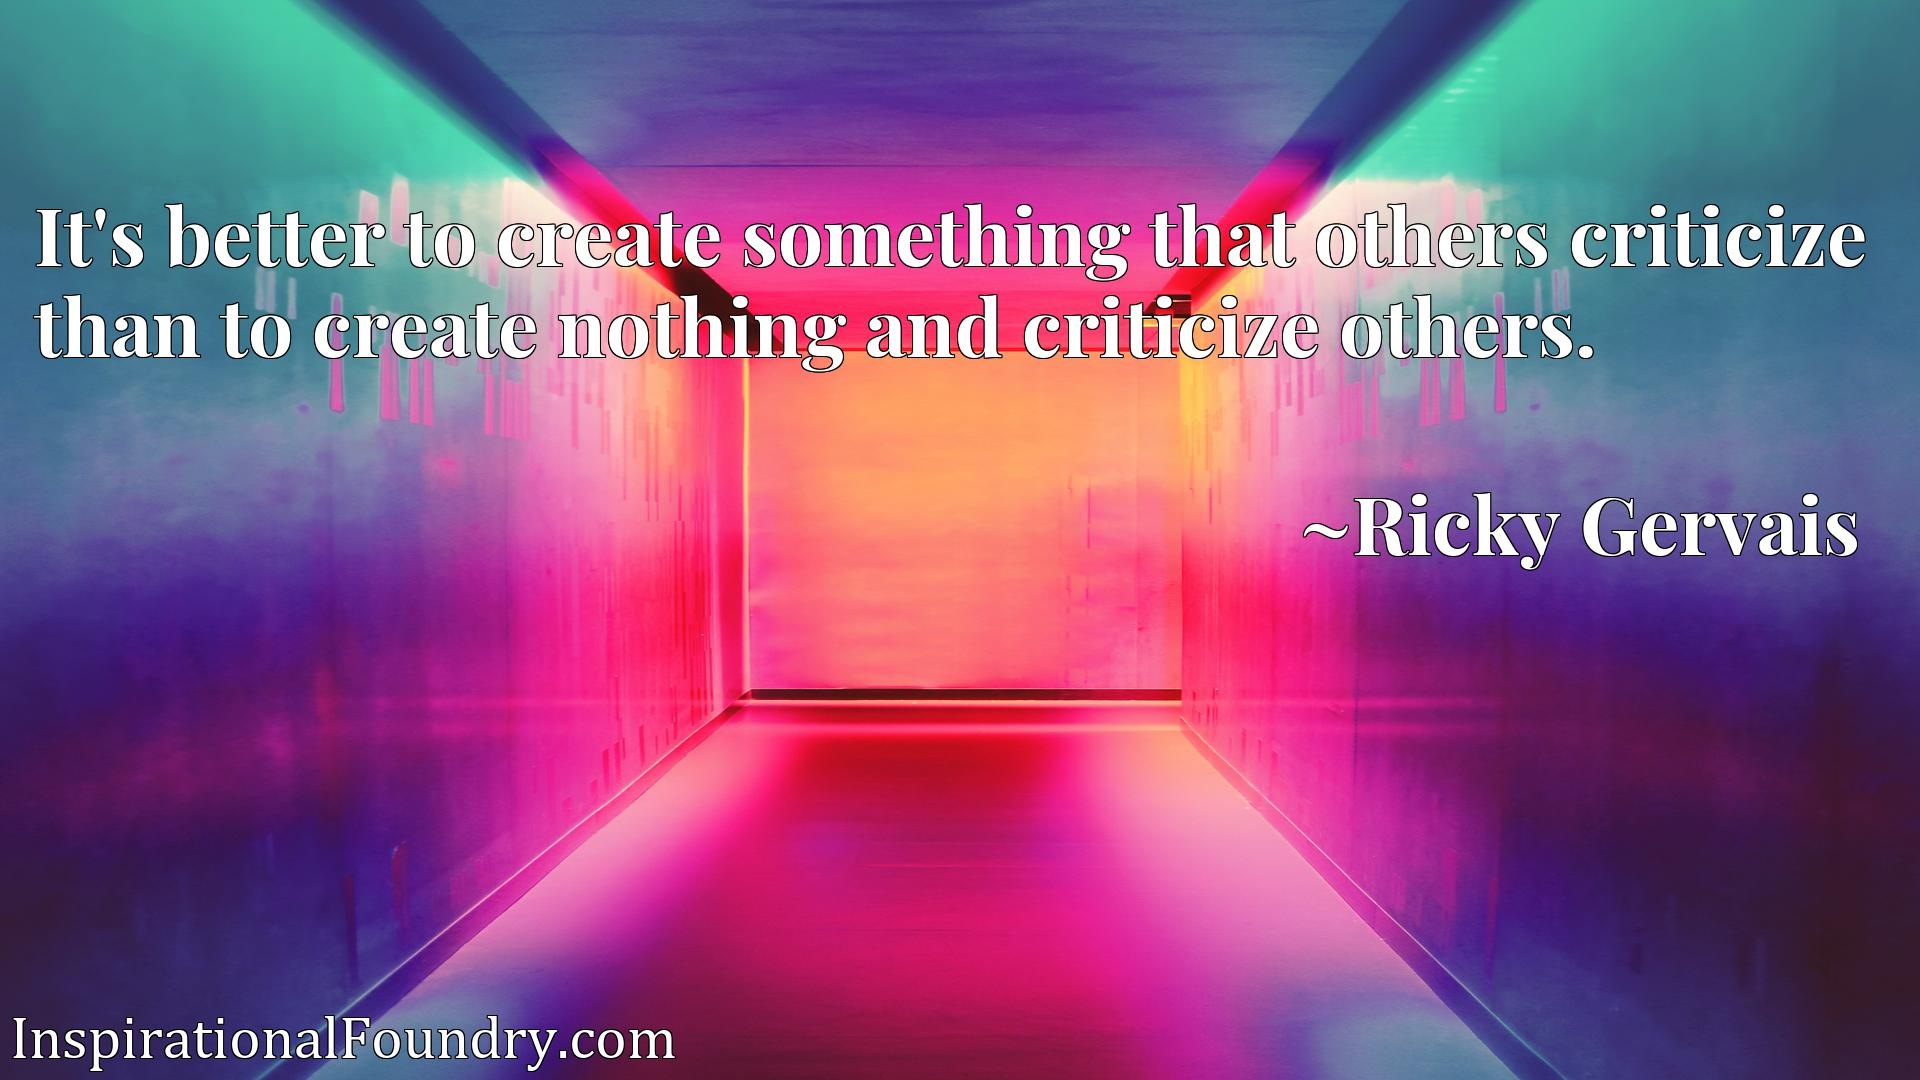 It's better to create something that others criticize than to create nothing and criticize others.